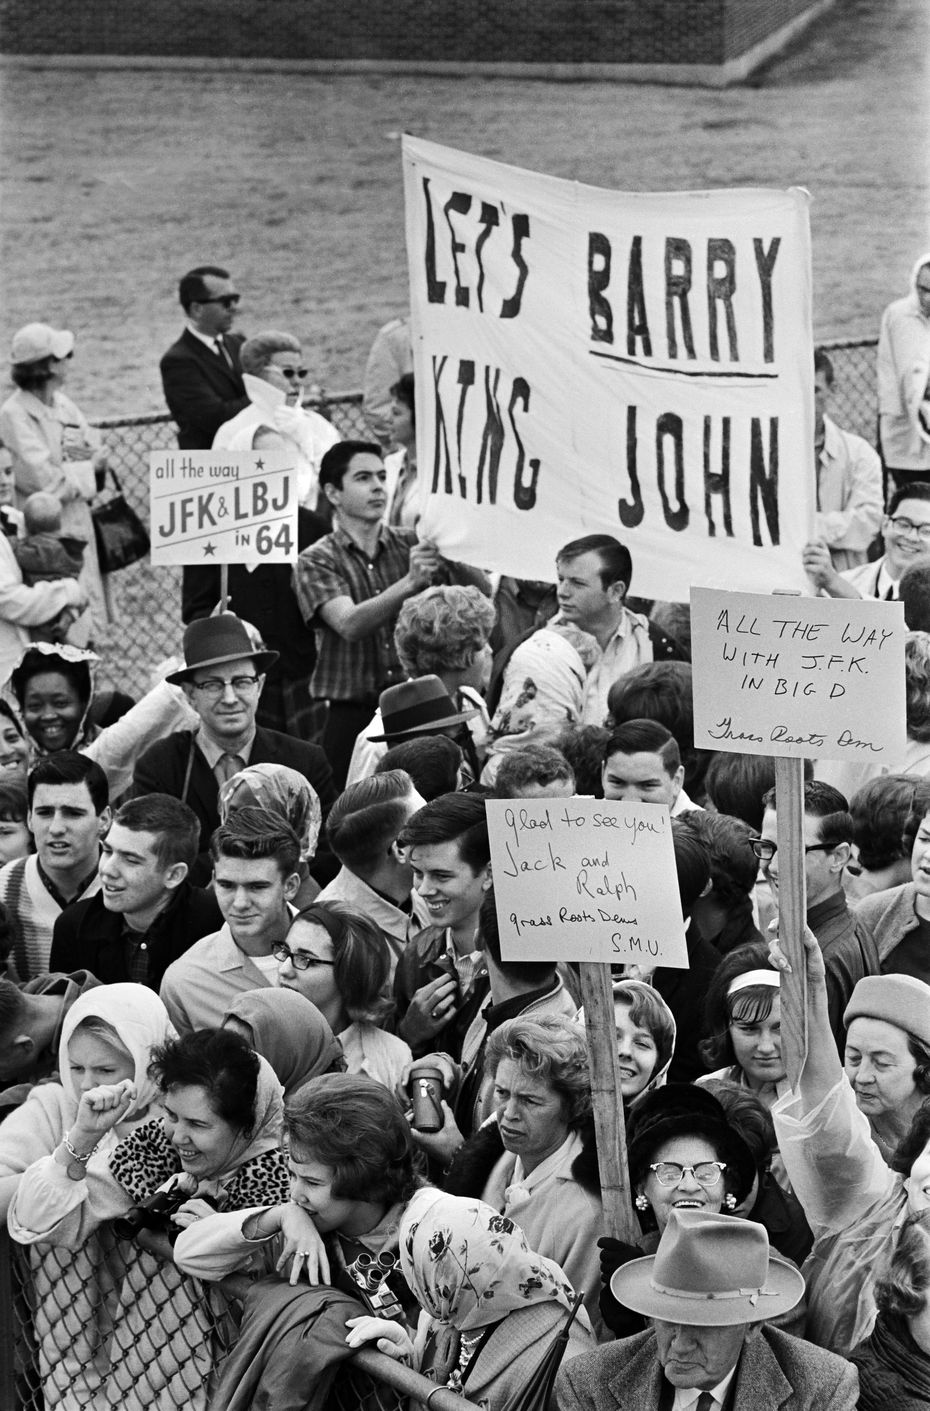 """Hate in Dallas?"" Nov. 22, 1963 -- A crowd of Grass Roots Democrats and other supporters of Pres. John F. Kennedy greeted him upon his arrival at Dallas Love Field, near opponents carrying a ""Let's Barry King John"" sign (referring to their desire to see conservative Republican Barry Goldwater become the party's nominee to run against the more liberal Democratic president Kennedy in the future 1964 presidential race which Kennedy never made it to.)"